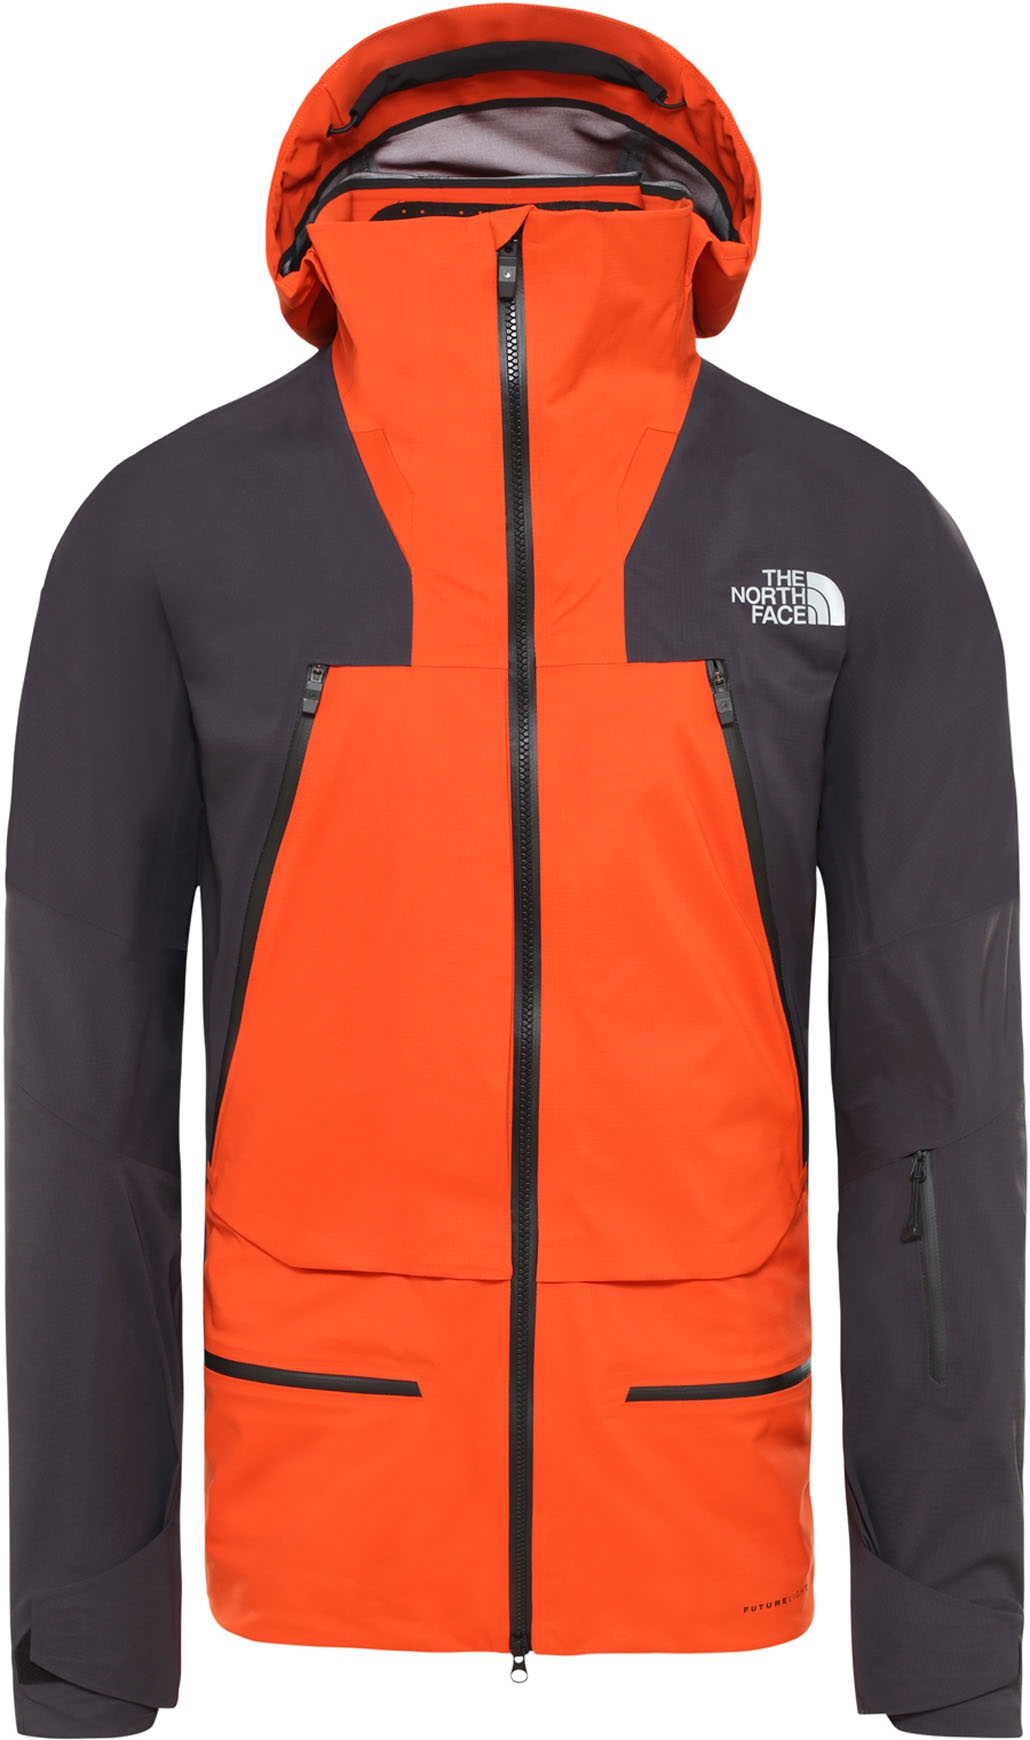 M Purist Jacket Papaya Orange/Weathered Black